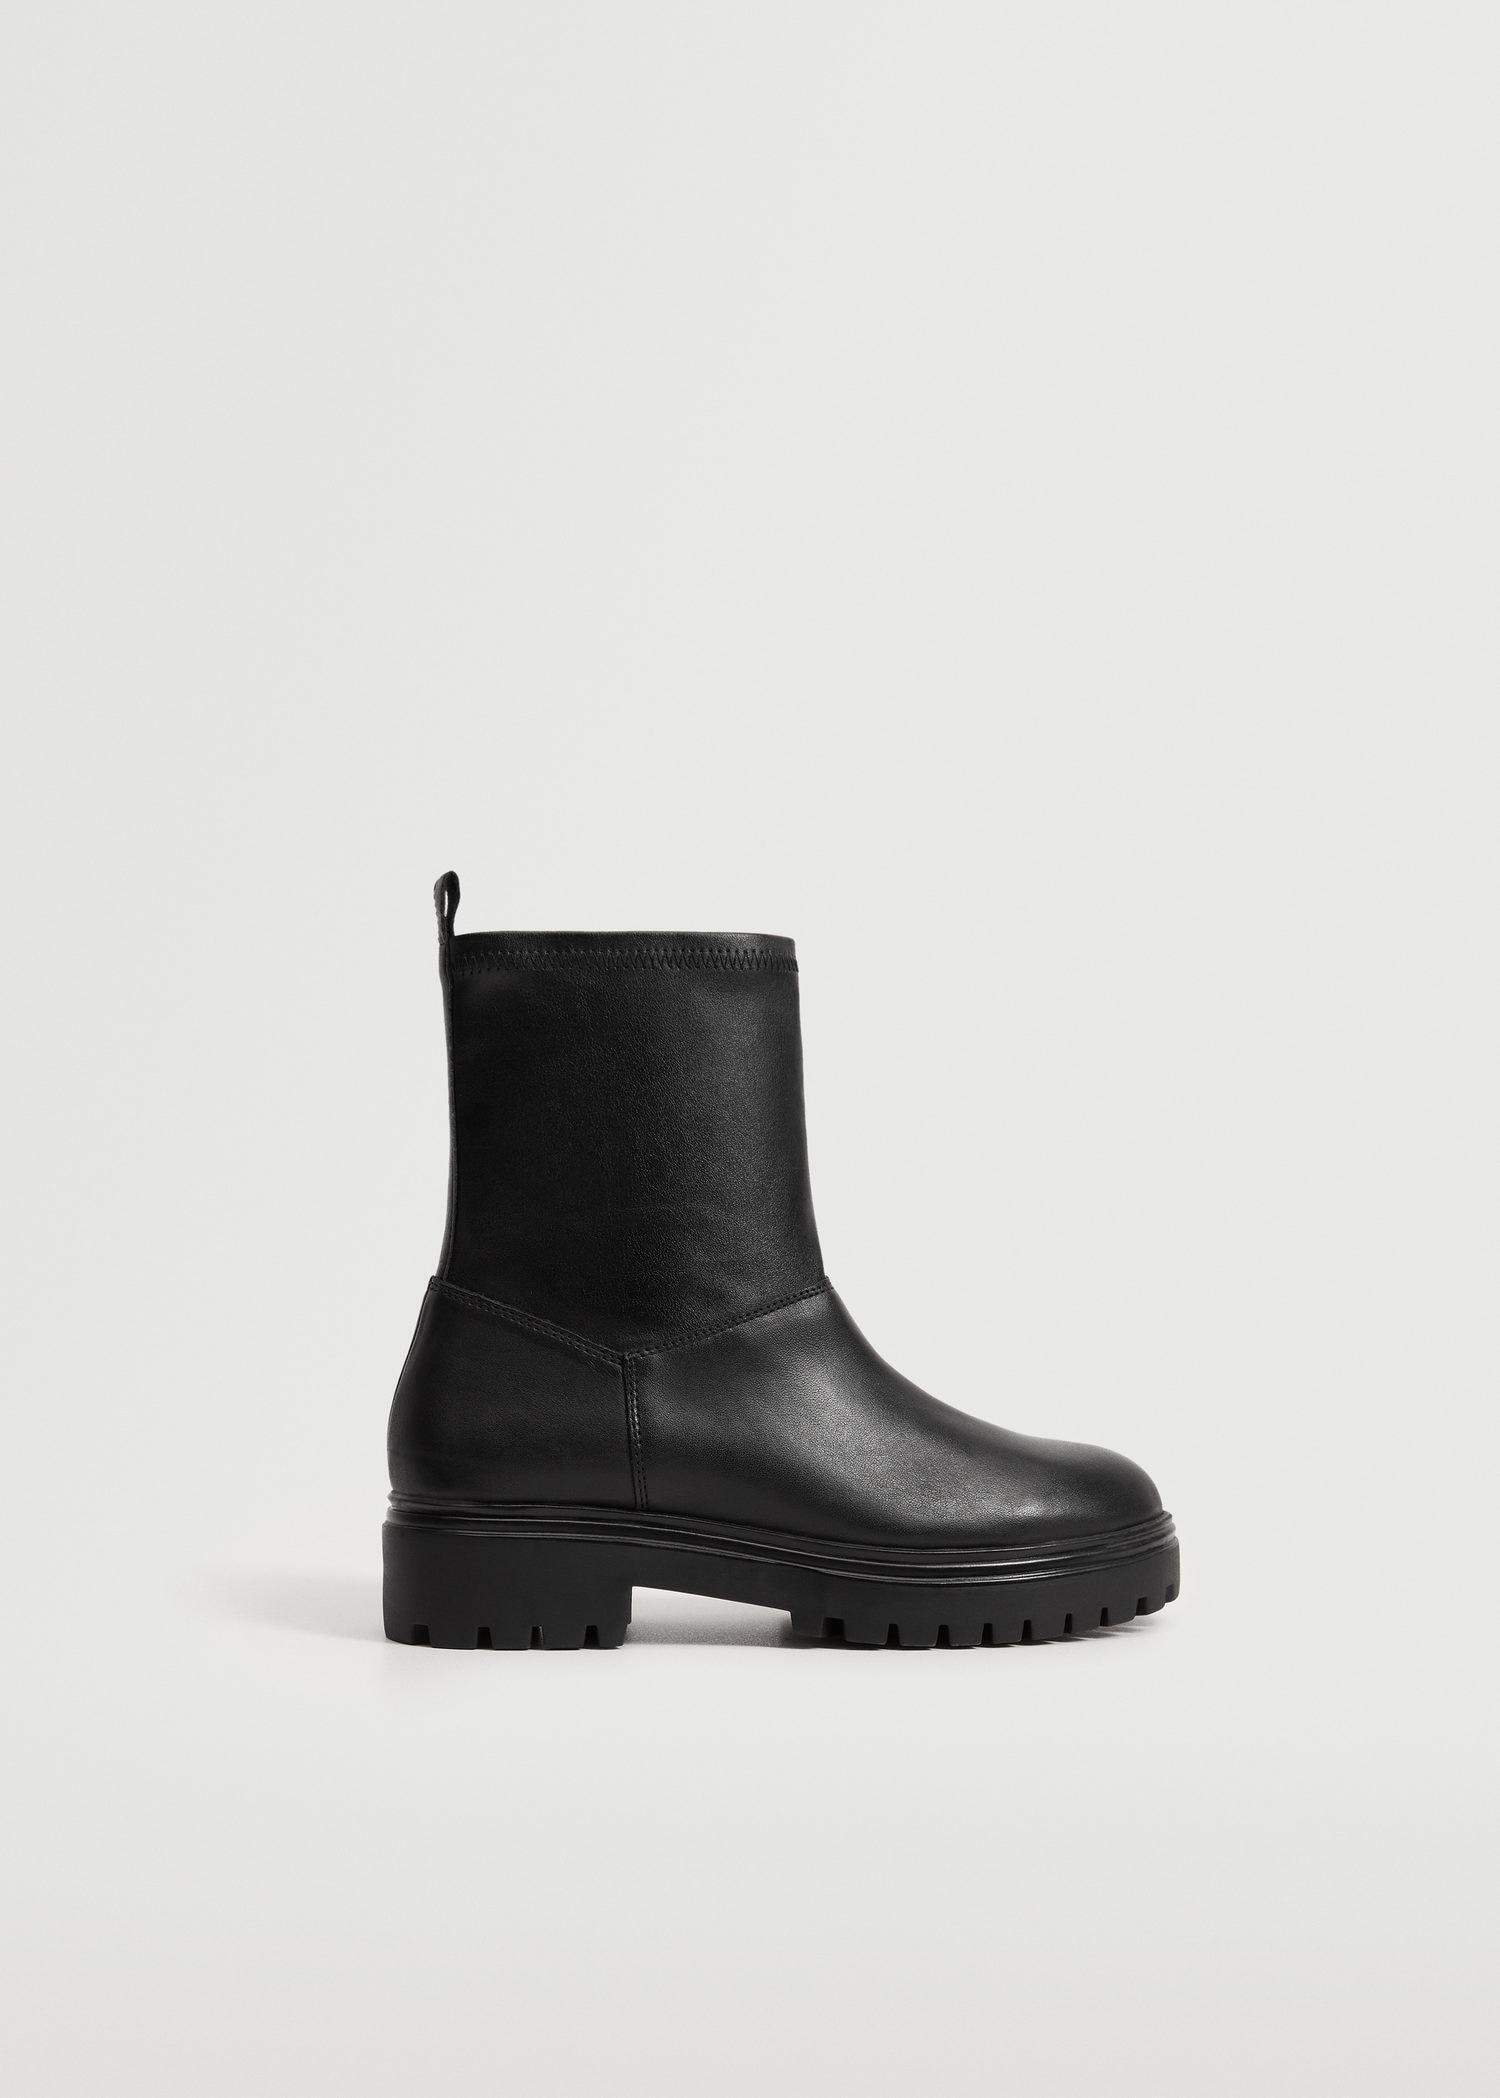 Serrated sole leather ankle boot